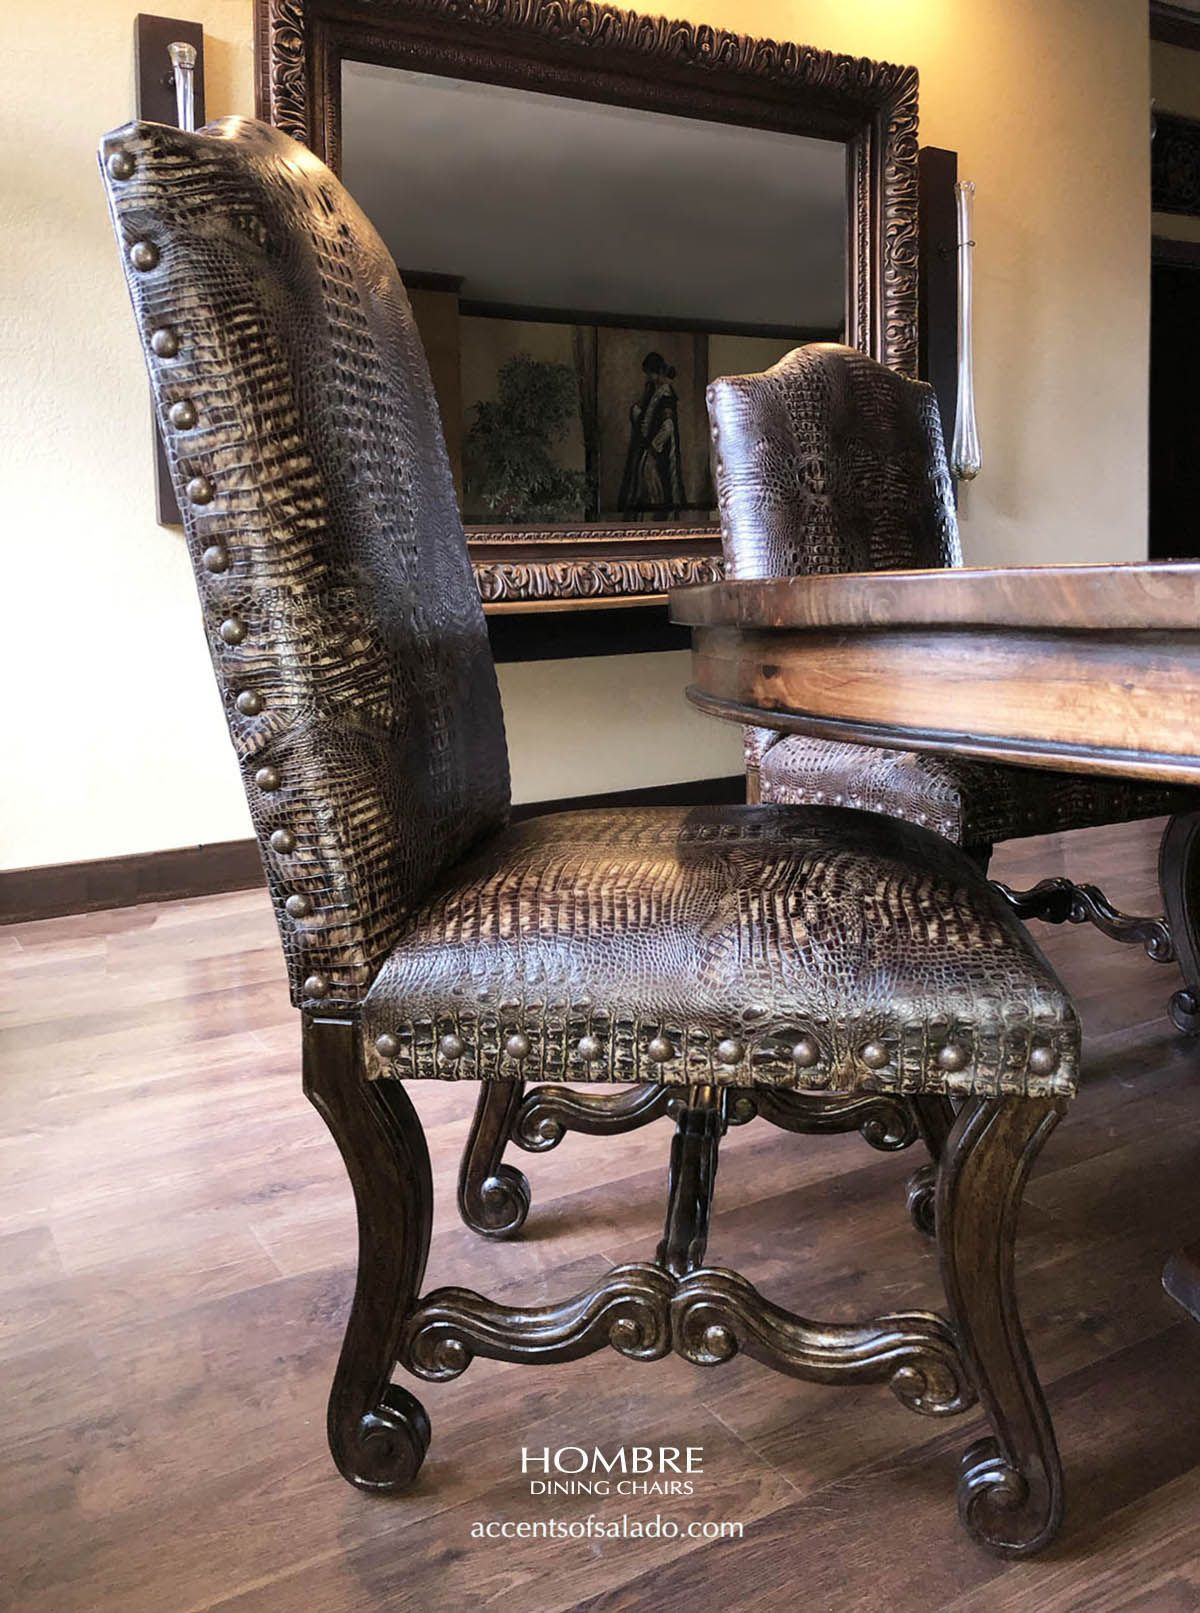 Crocodile Dining Chairs At Accents Of Salado Tuscan Decorating